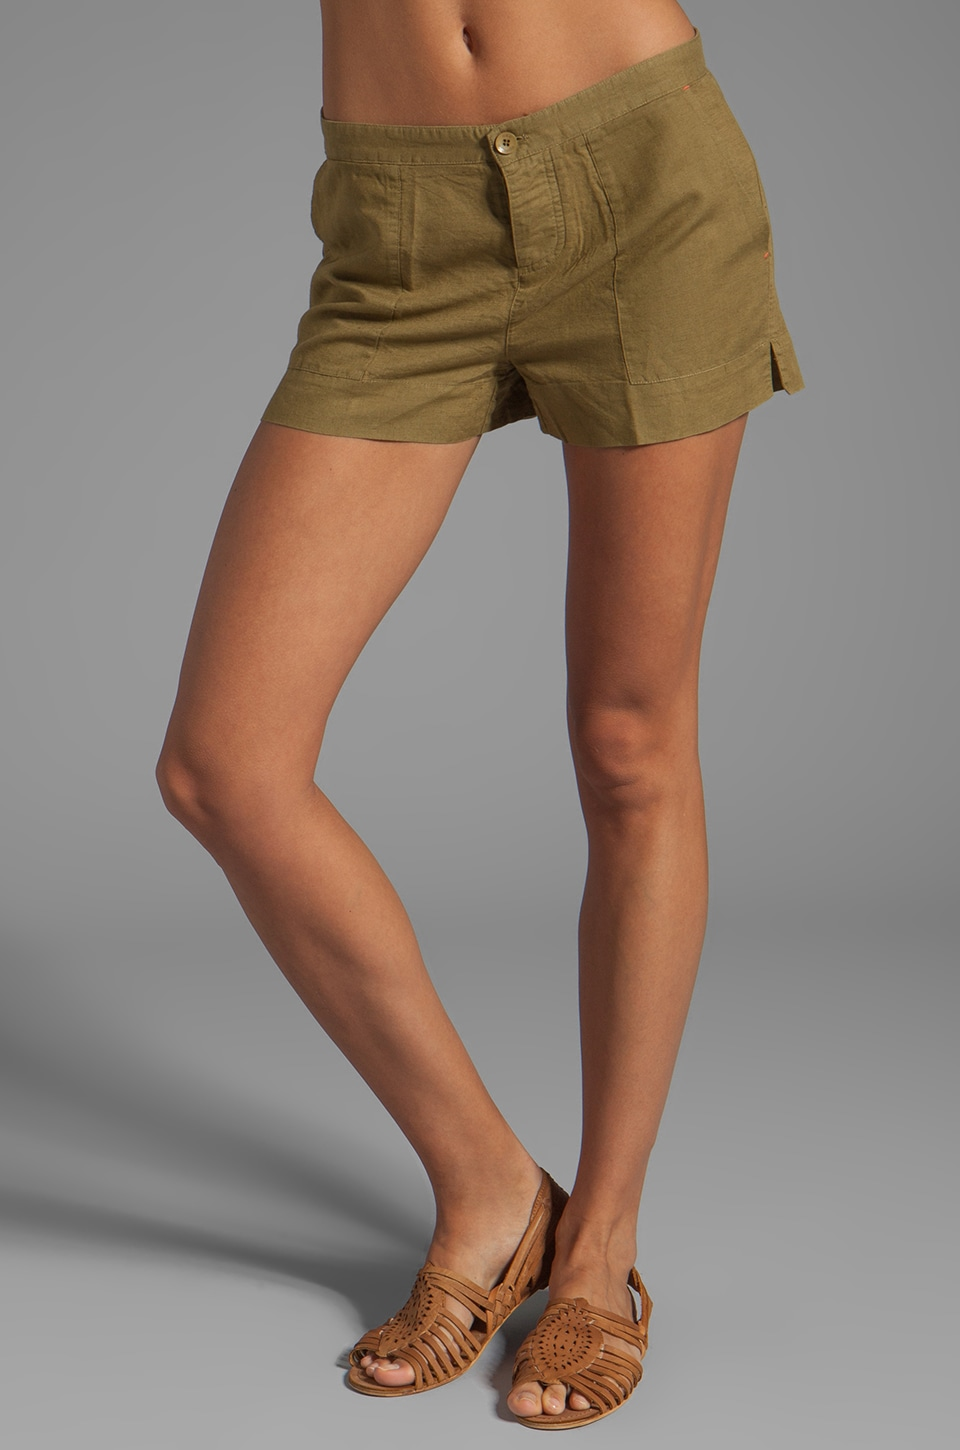 C&C California Linen Cotton Solid Linen Short in Nutria